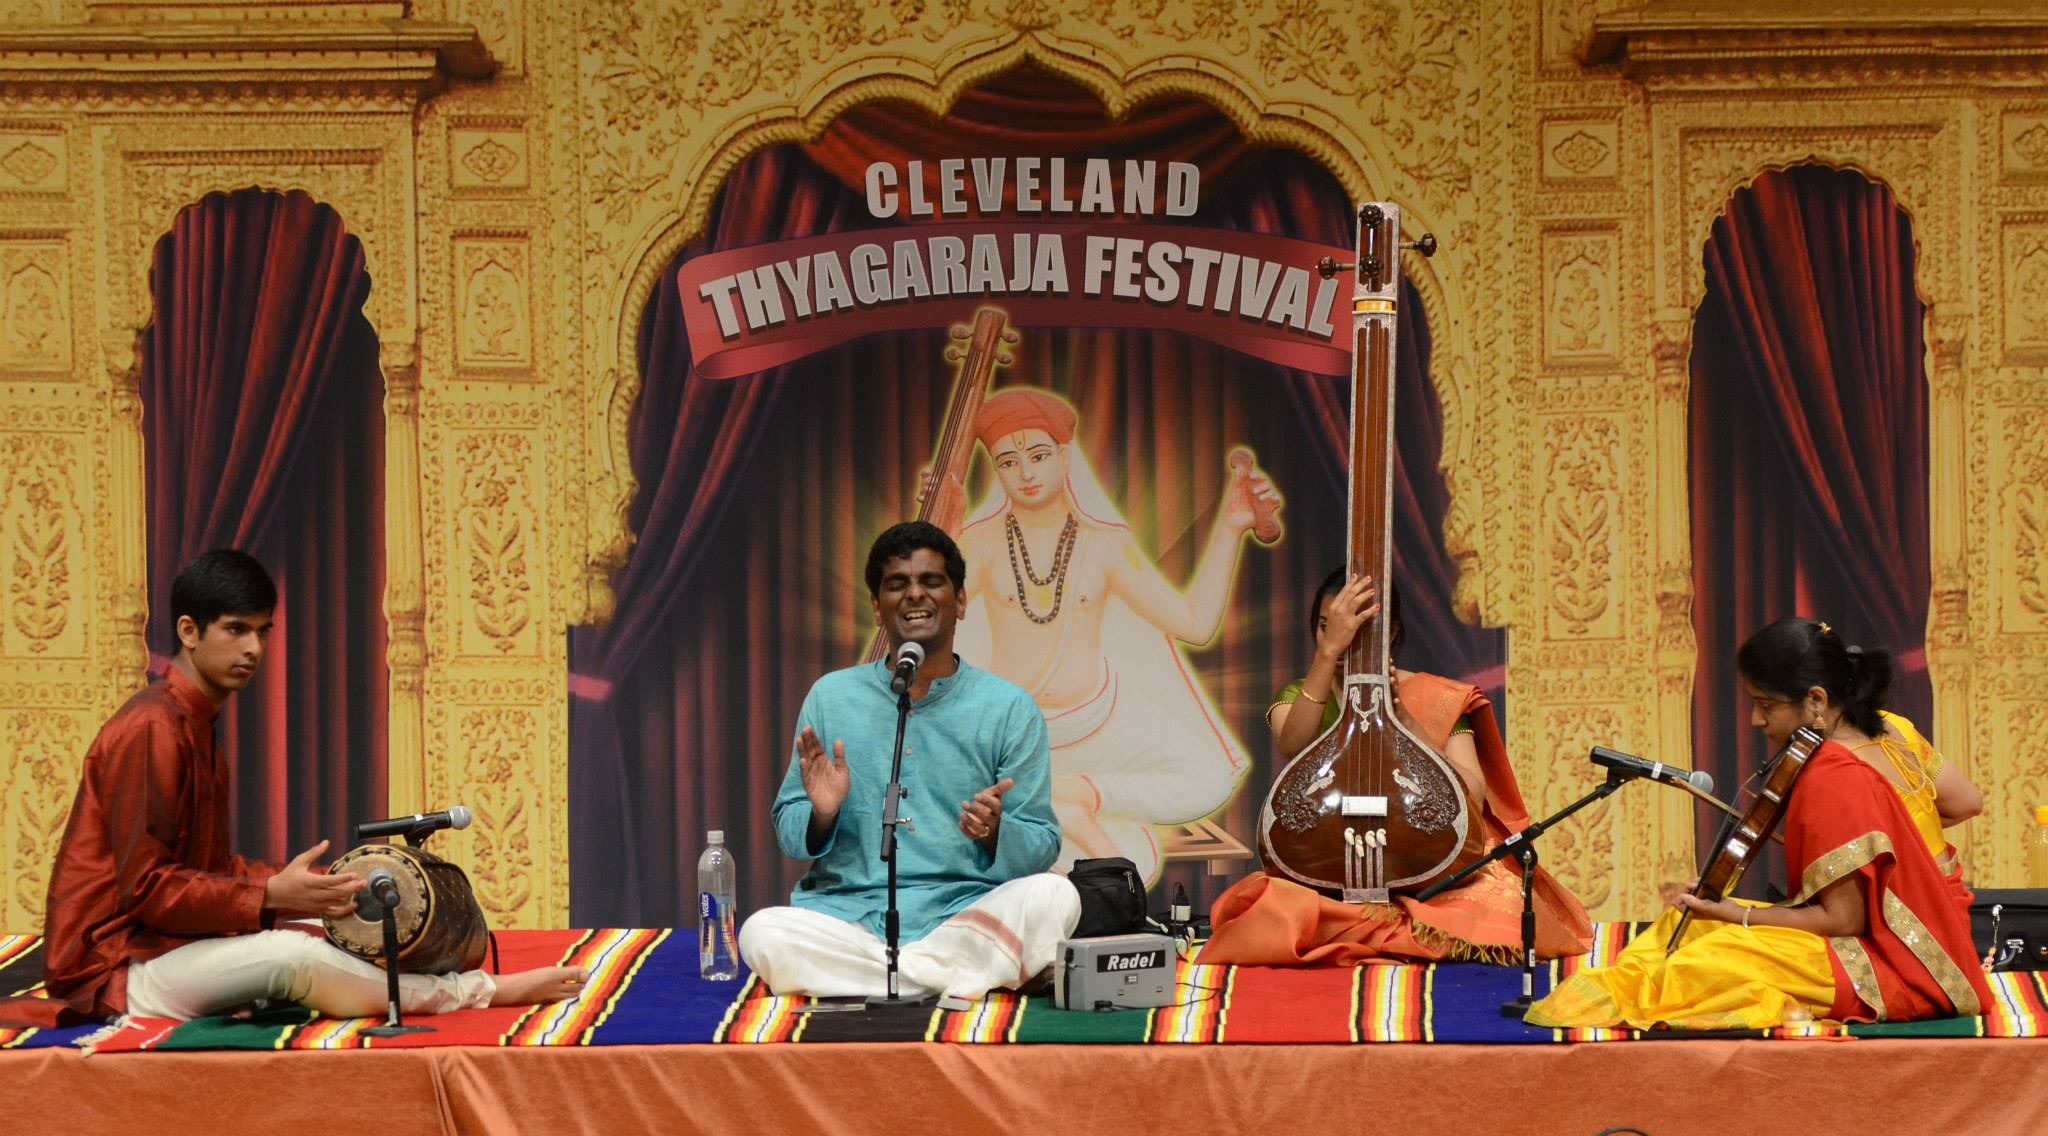 With Sri. Bharath Kumar (voice), disciple of Vid. Sanjay Subrahmanyan and Apoorva Krishna (violin); 2015 Cleveland Thyagaraja Festival at Cleveland State University